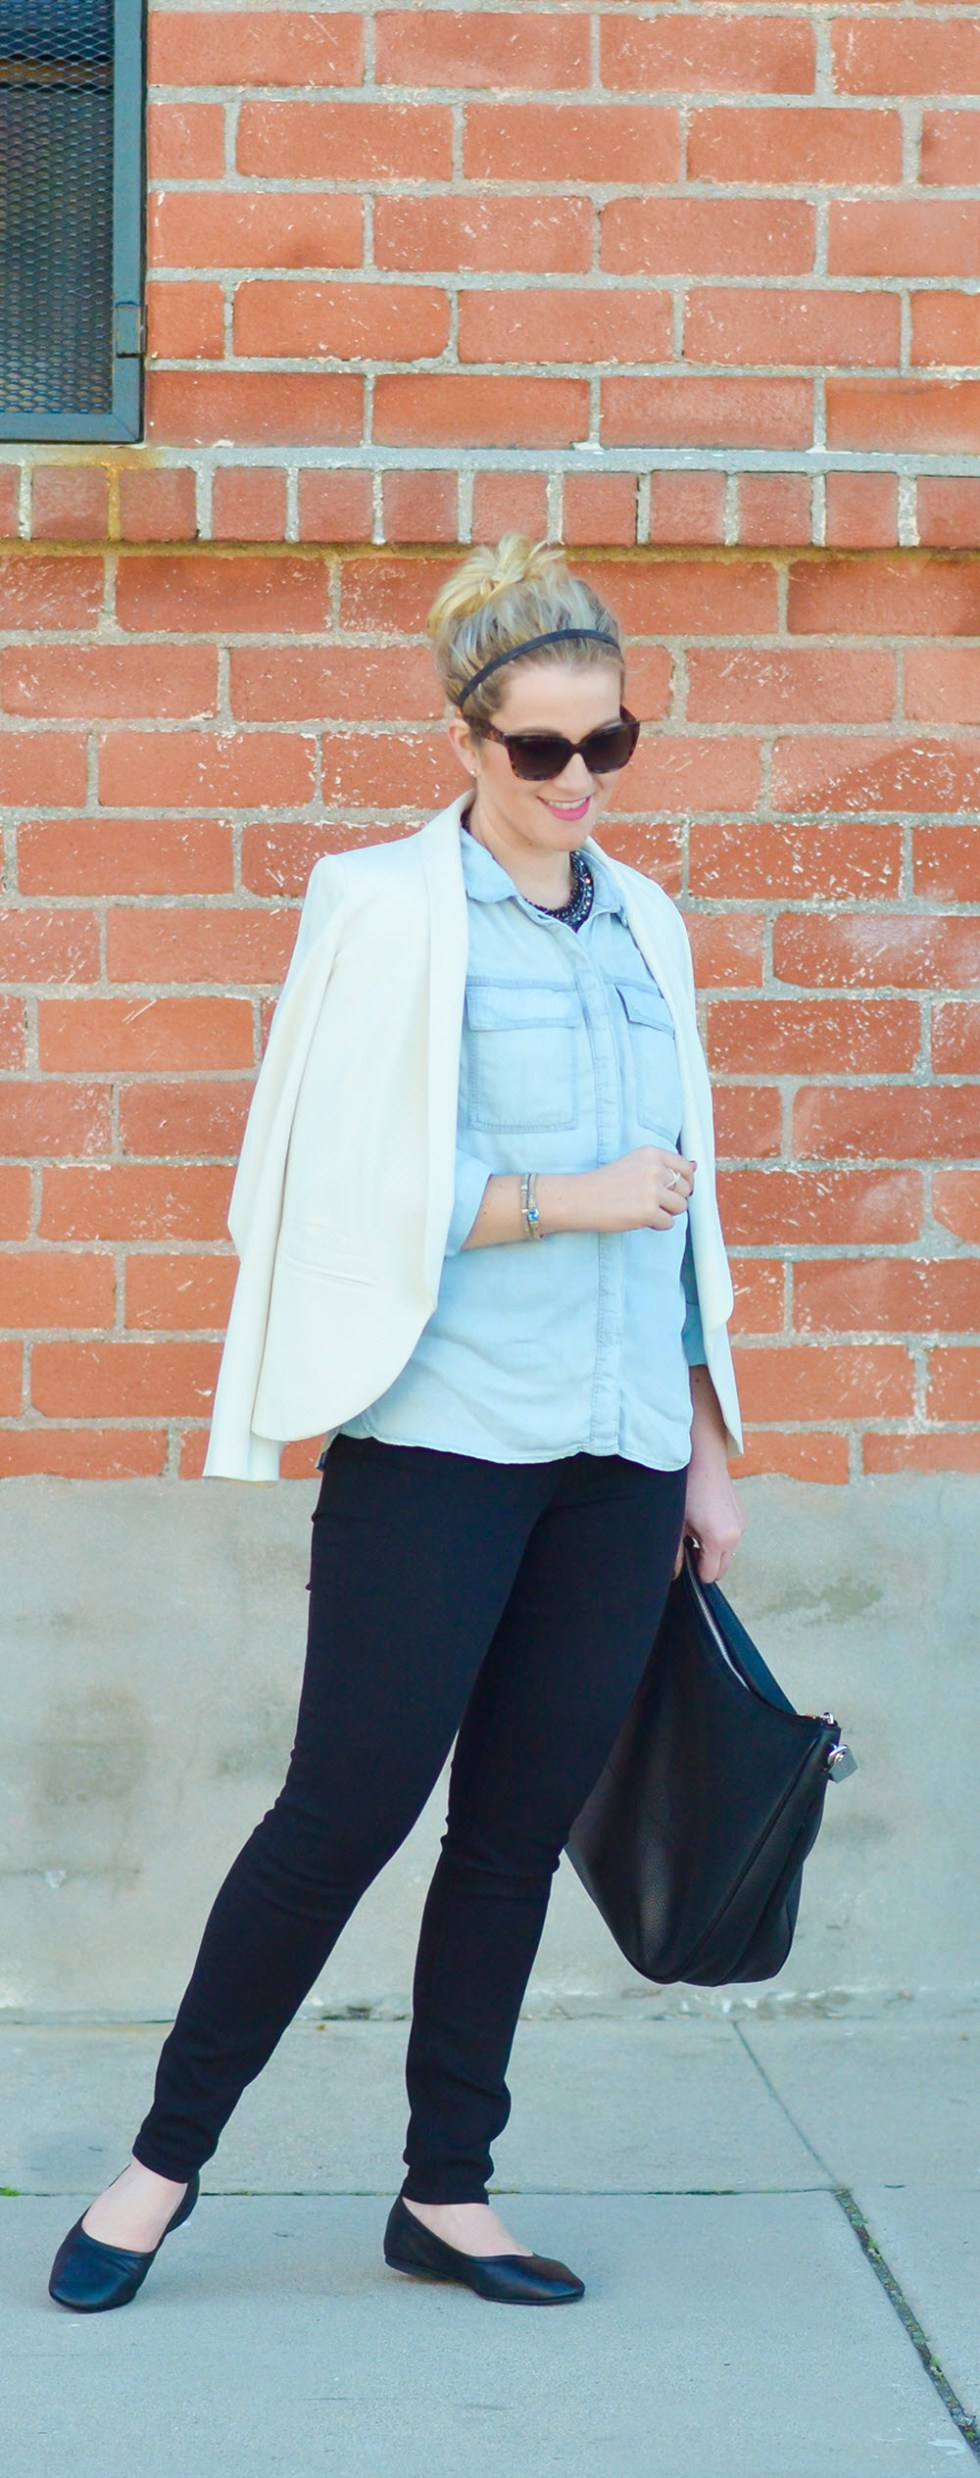 Silver Jeans Chambray Shirt Outfit w. Skinny Jeans and black ballerina flats.